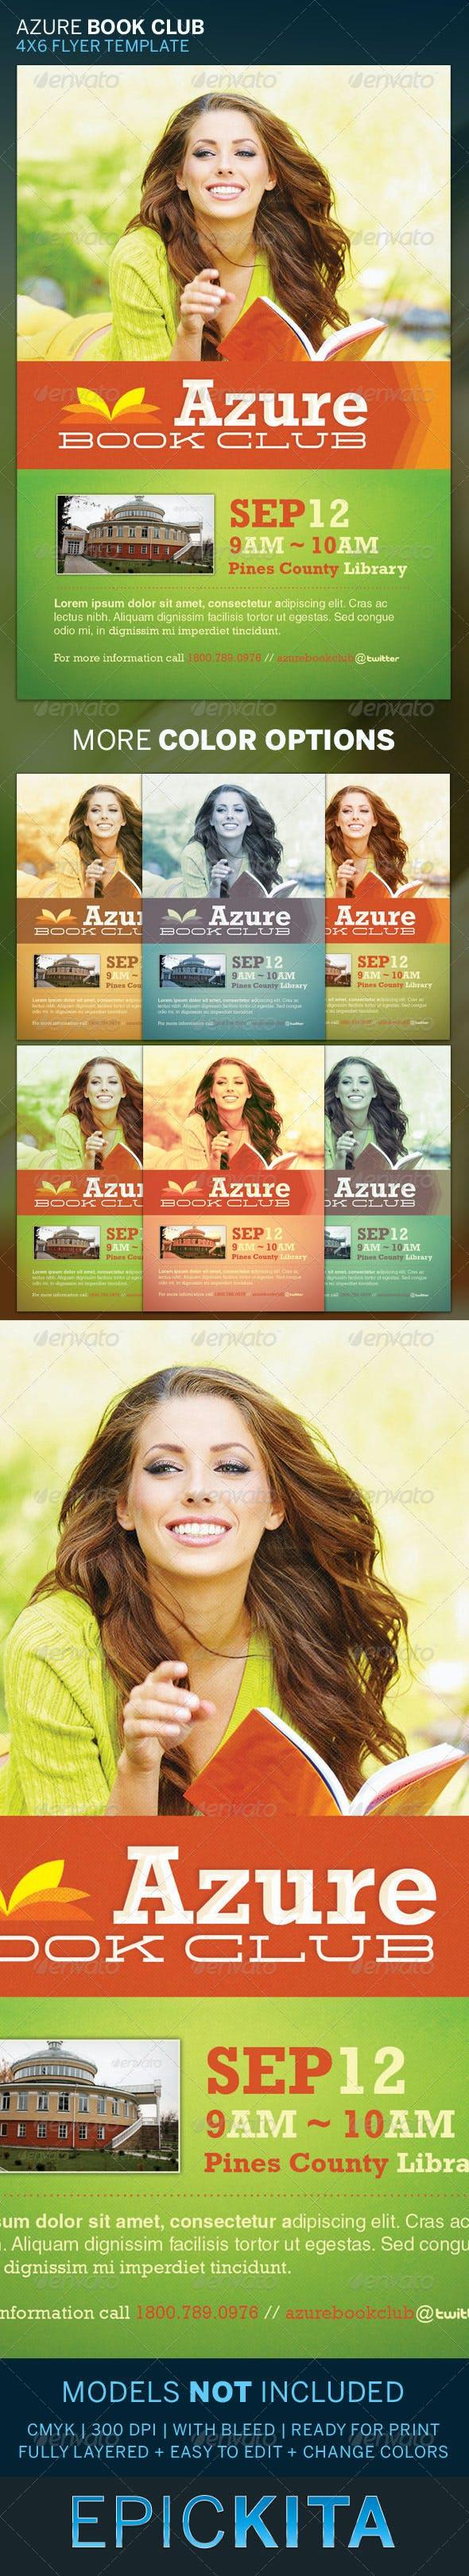 azure book club flyer template by epickita graphicriver